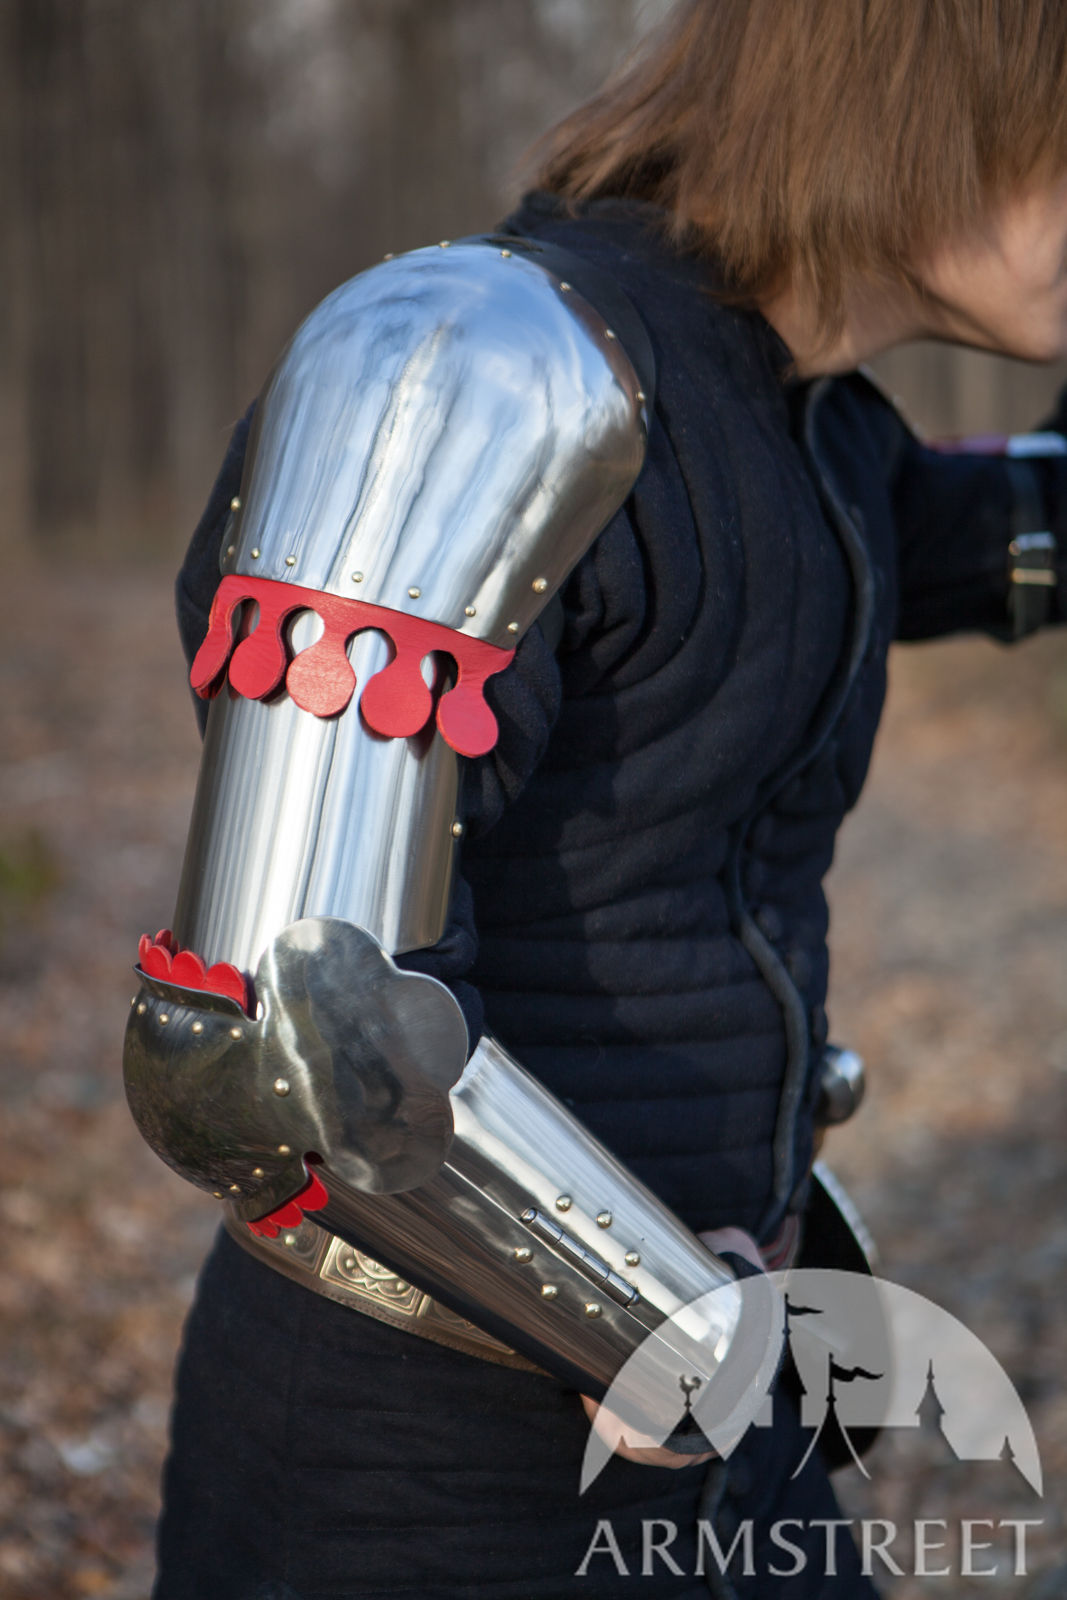 Wester Combat Arms: Stainless steel SCA armor